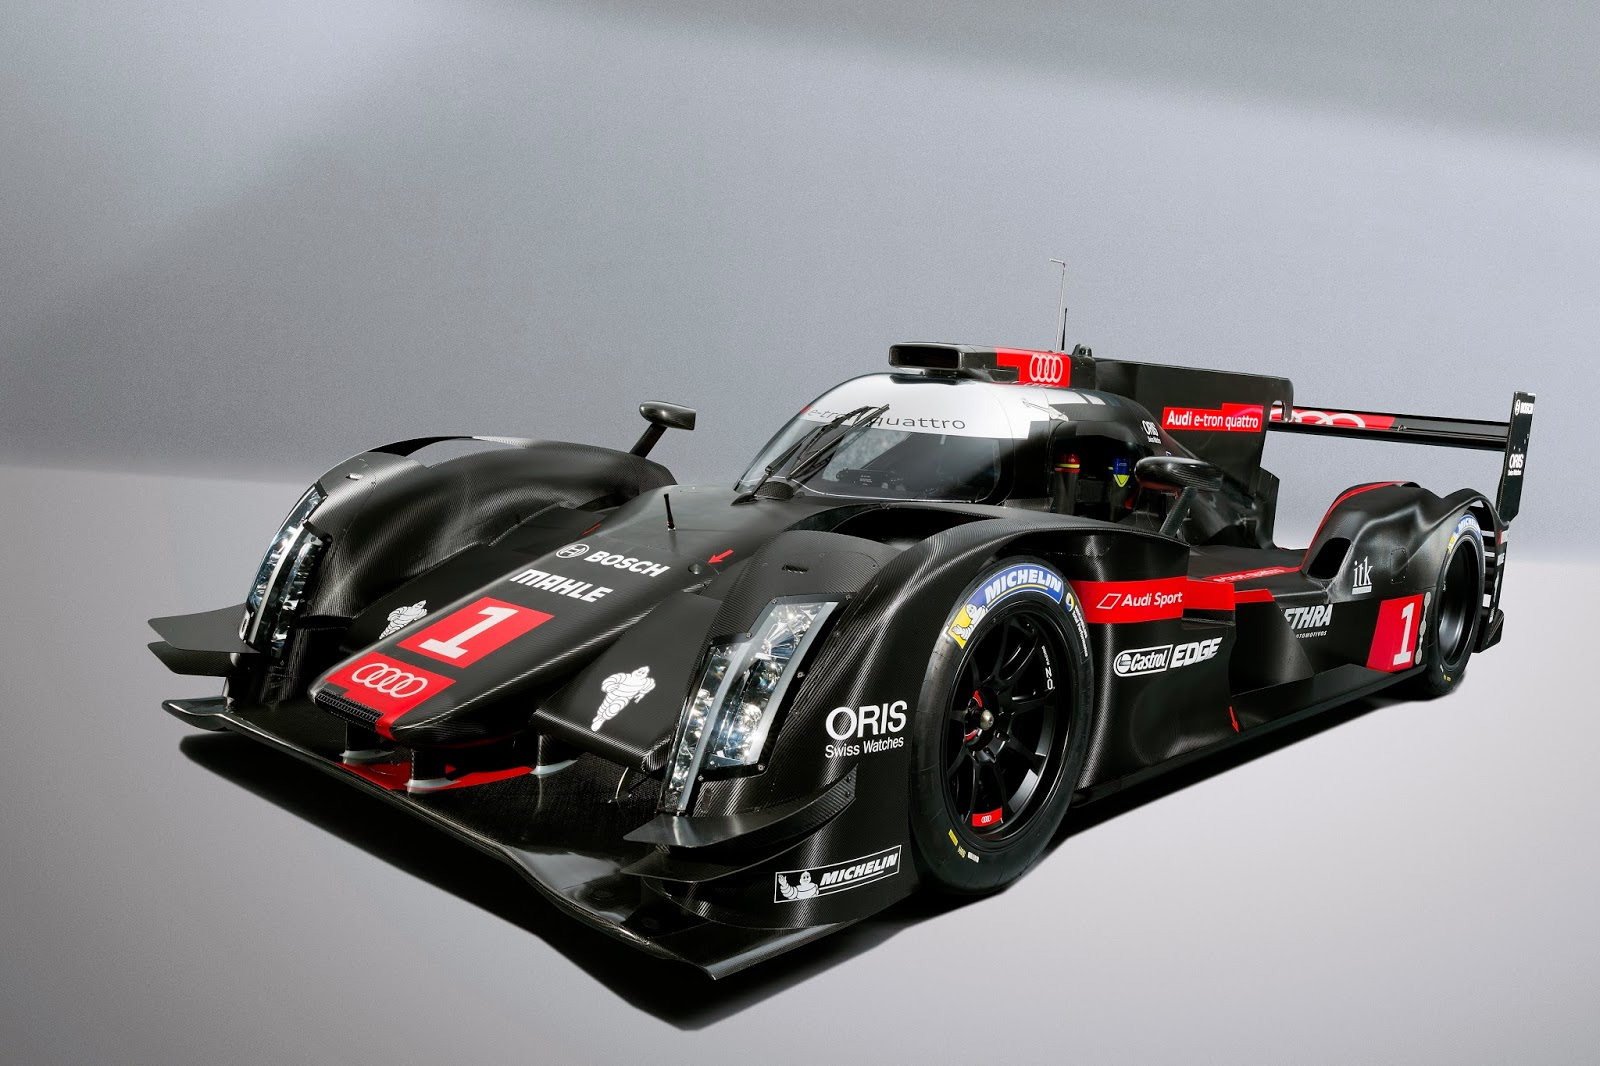 The New Technology Behind The 2014 Audi R18 E Tron Quattro